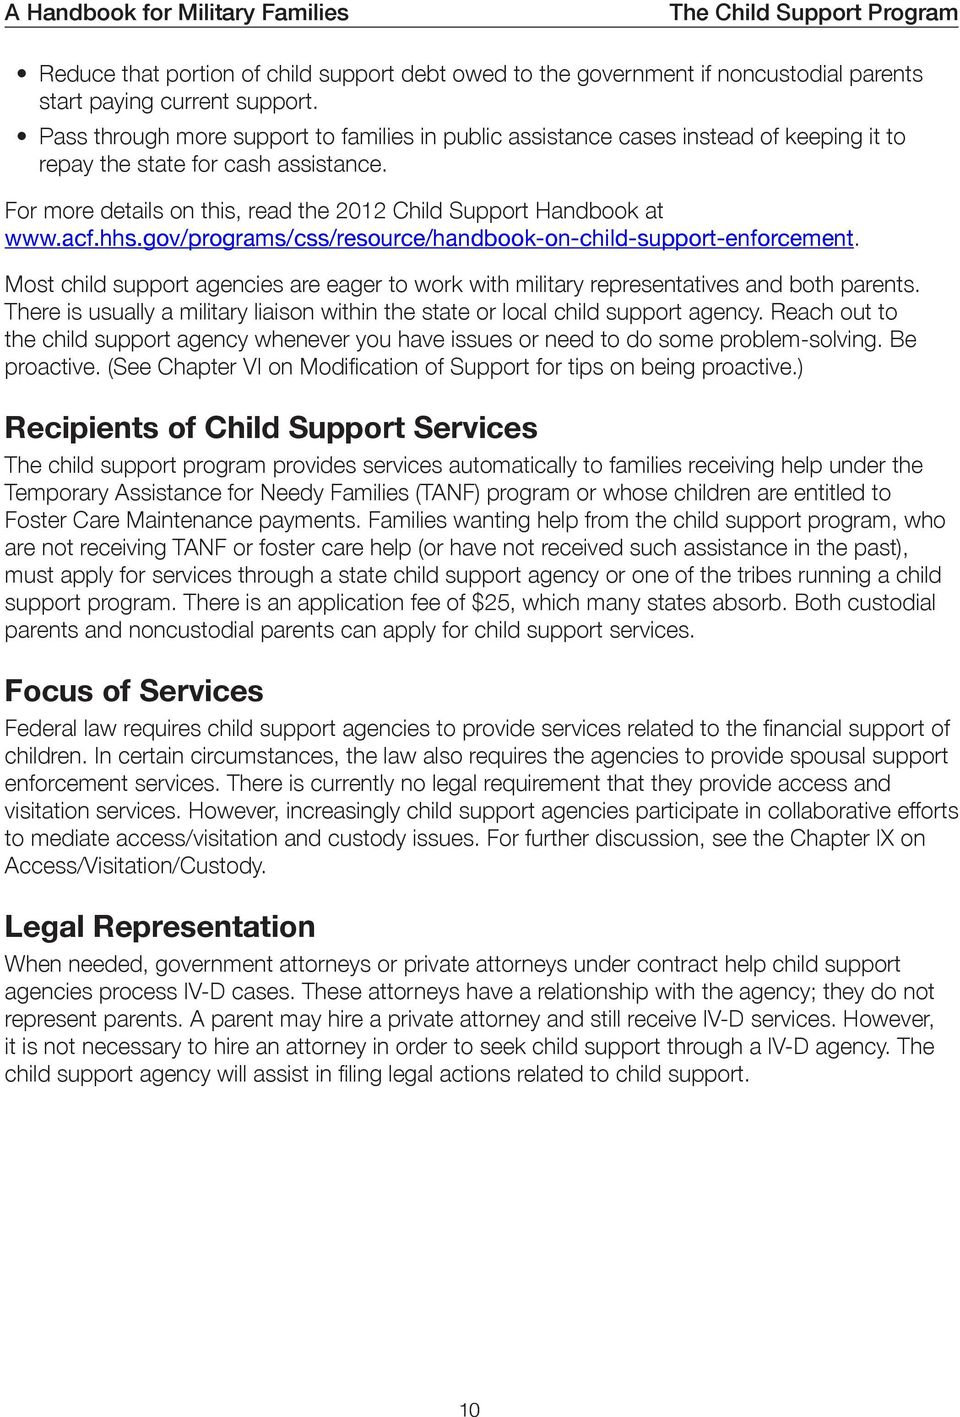 acf.hhs.gov/programs/css/resource/handbook-on-child-support-enforcement. Most child support agencies are eager to work with military representatives and both parents.